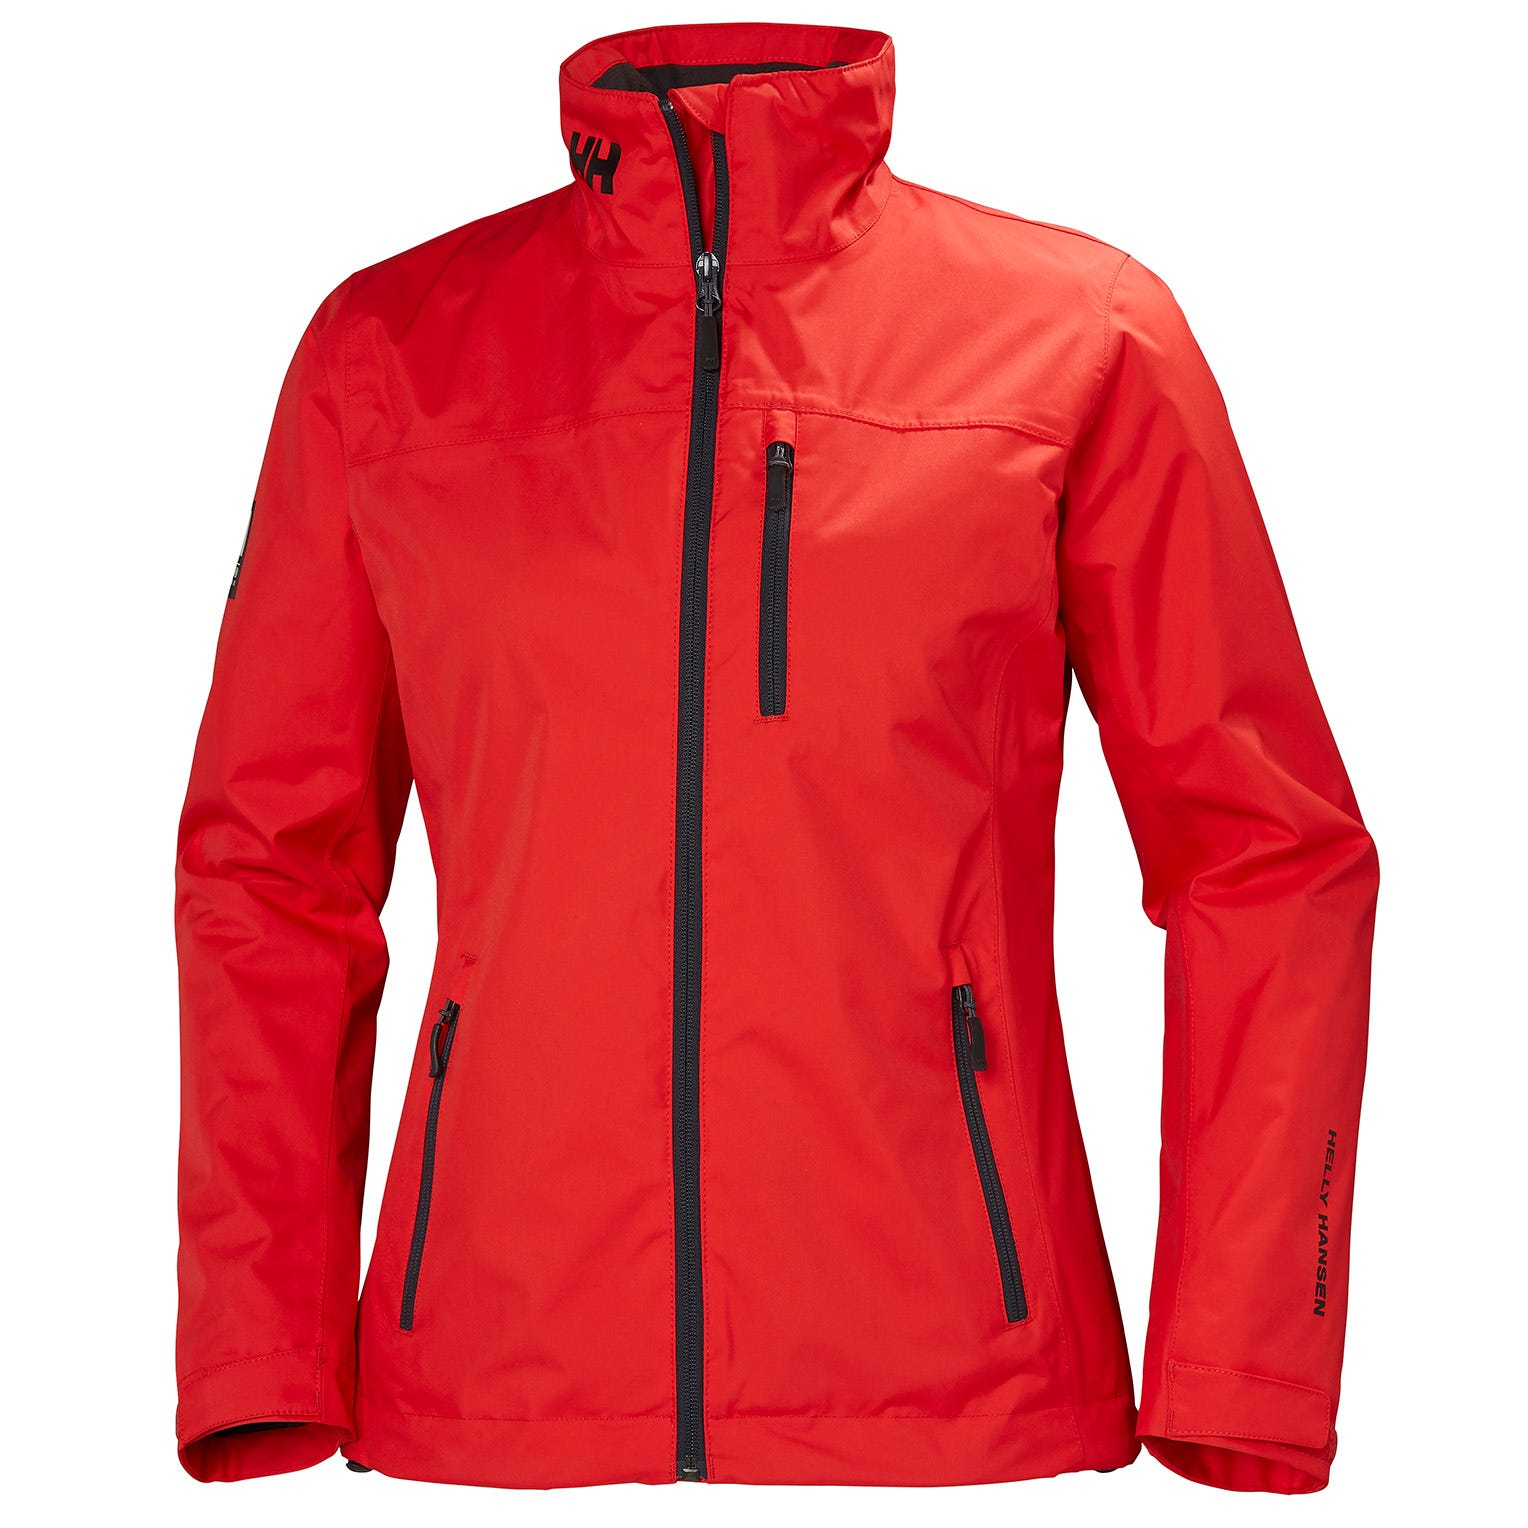 Helly Hansen Womens Crew Midlayer Sailing Jacket Red L